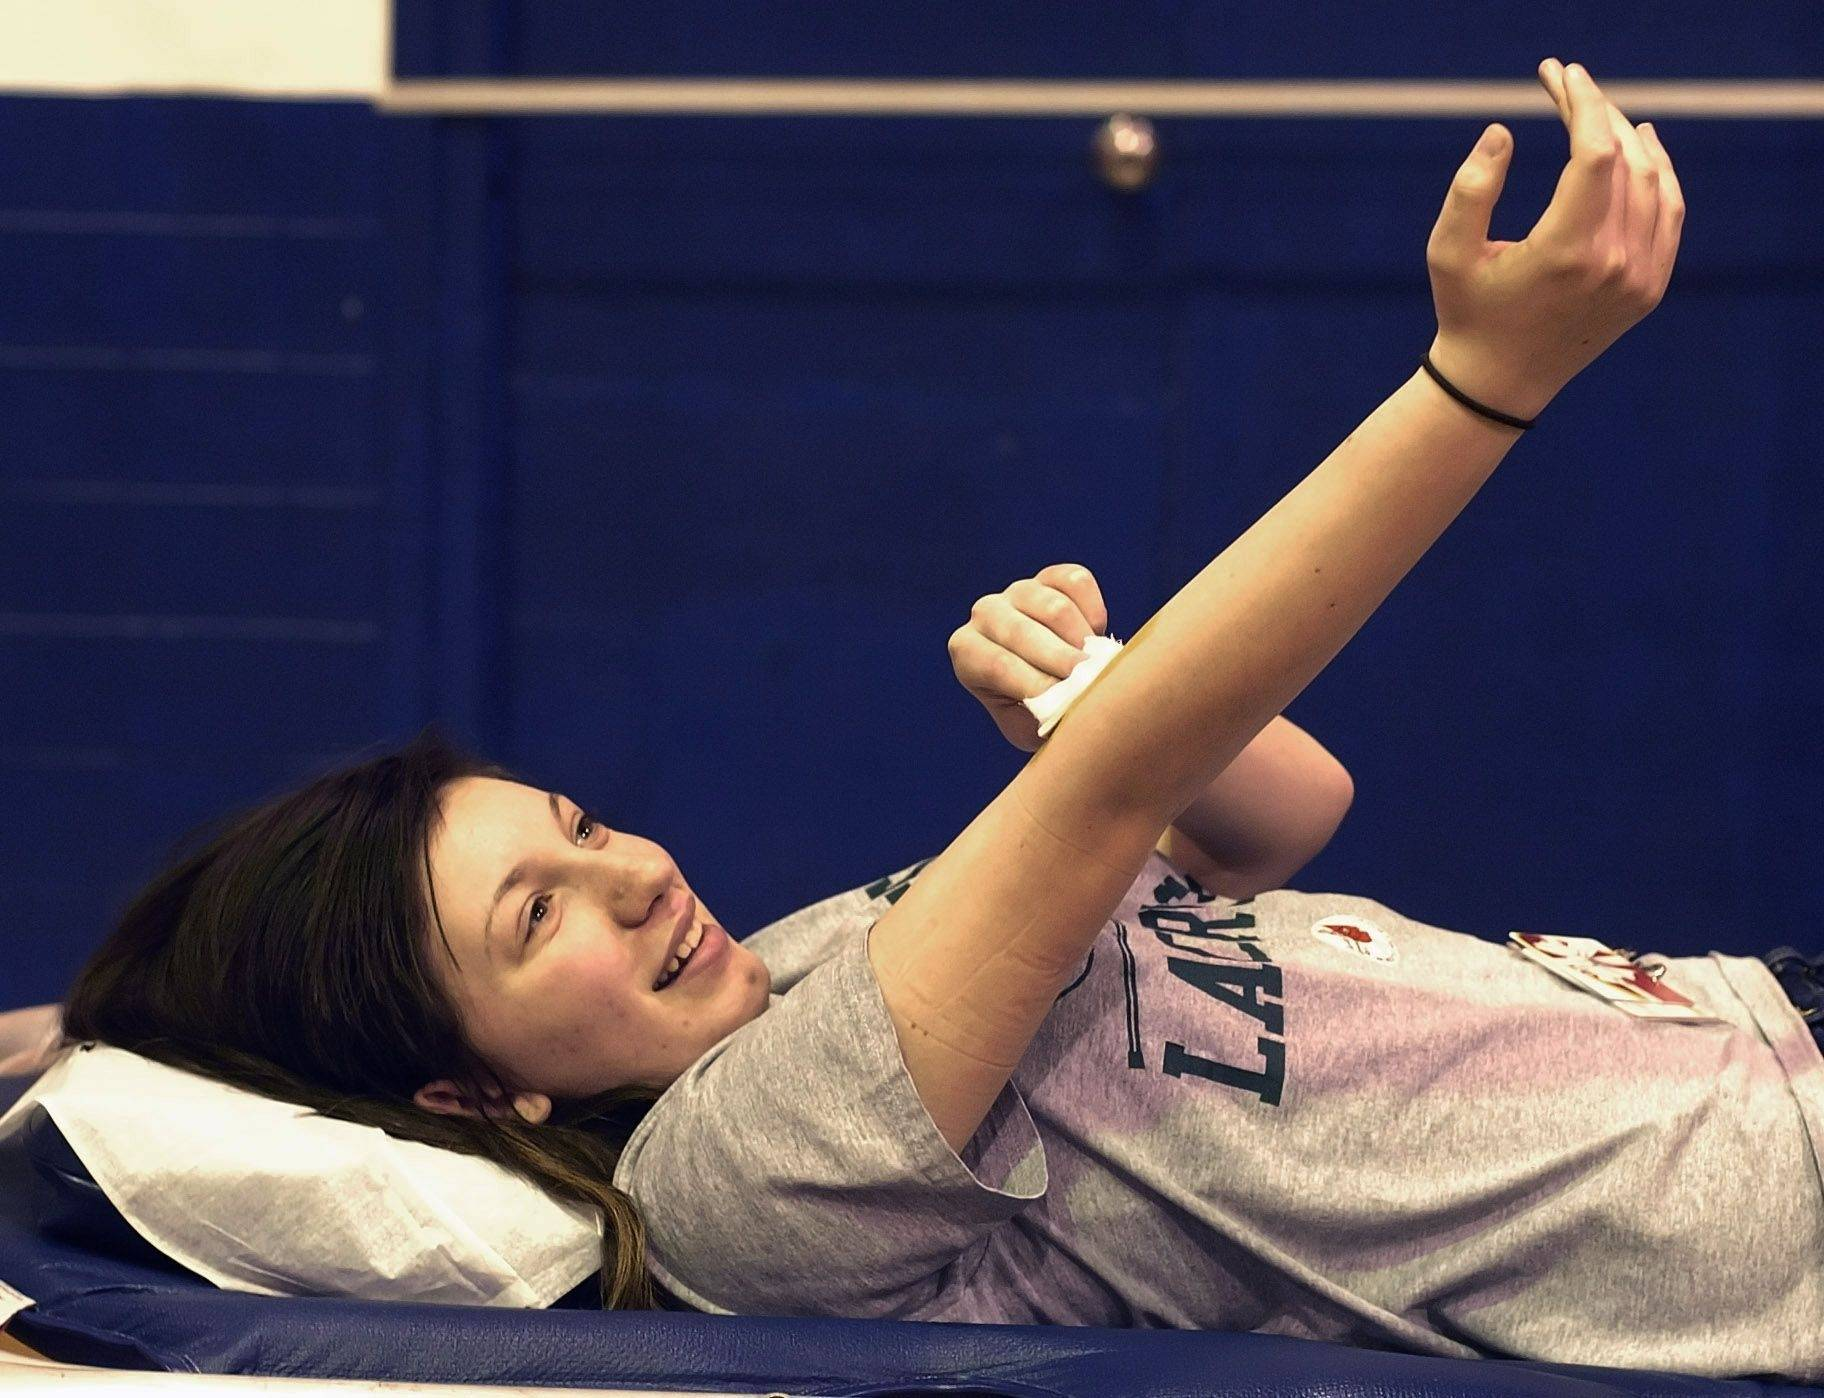 Vicky Ralph of Bensenville gives blood for the first time Wednesday at Fenton High School.